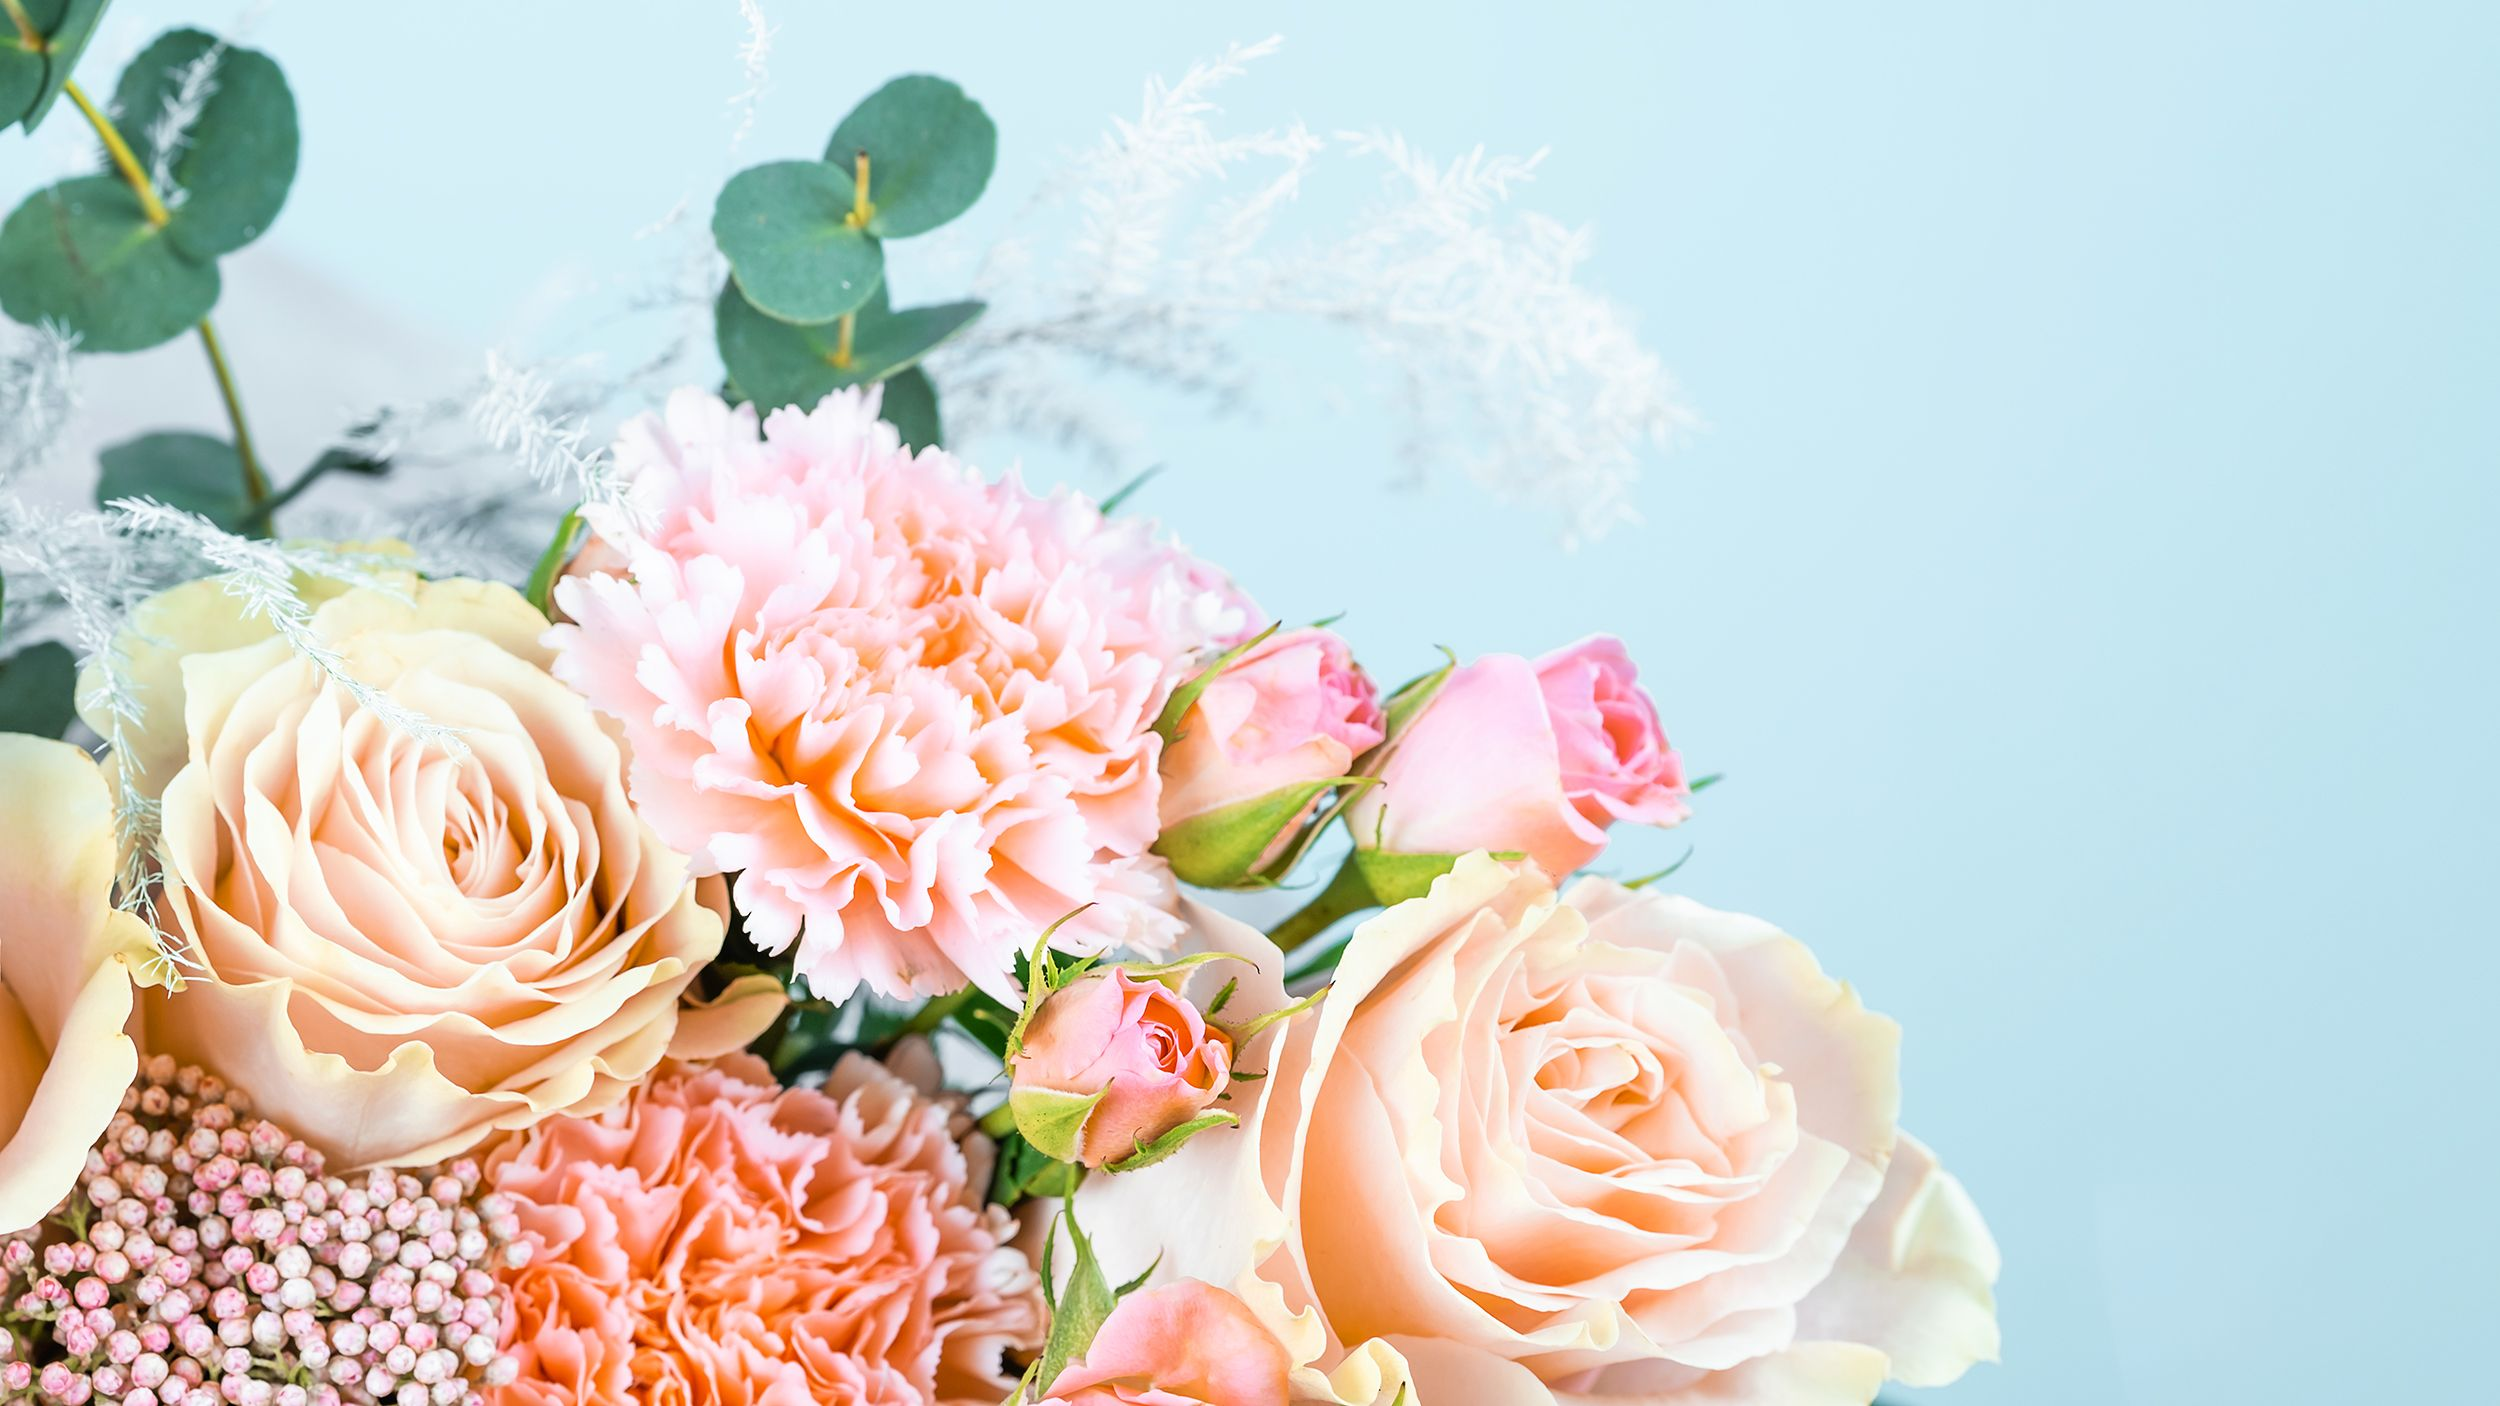 Best Mother S Day Flowers 2021 Bouquets For Mother S Day